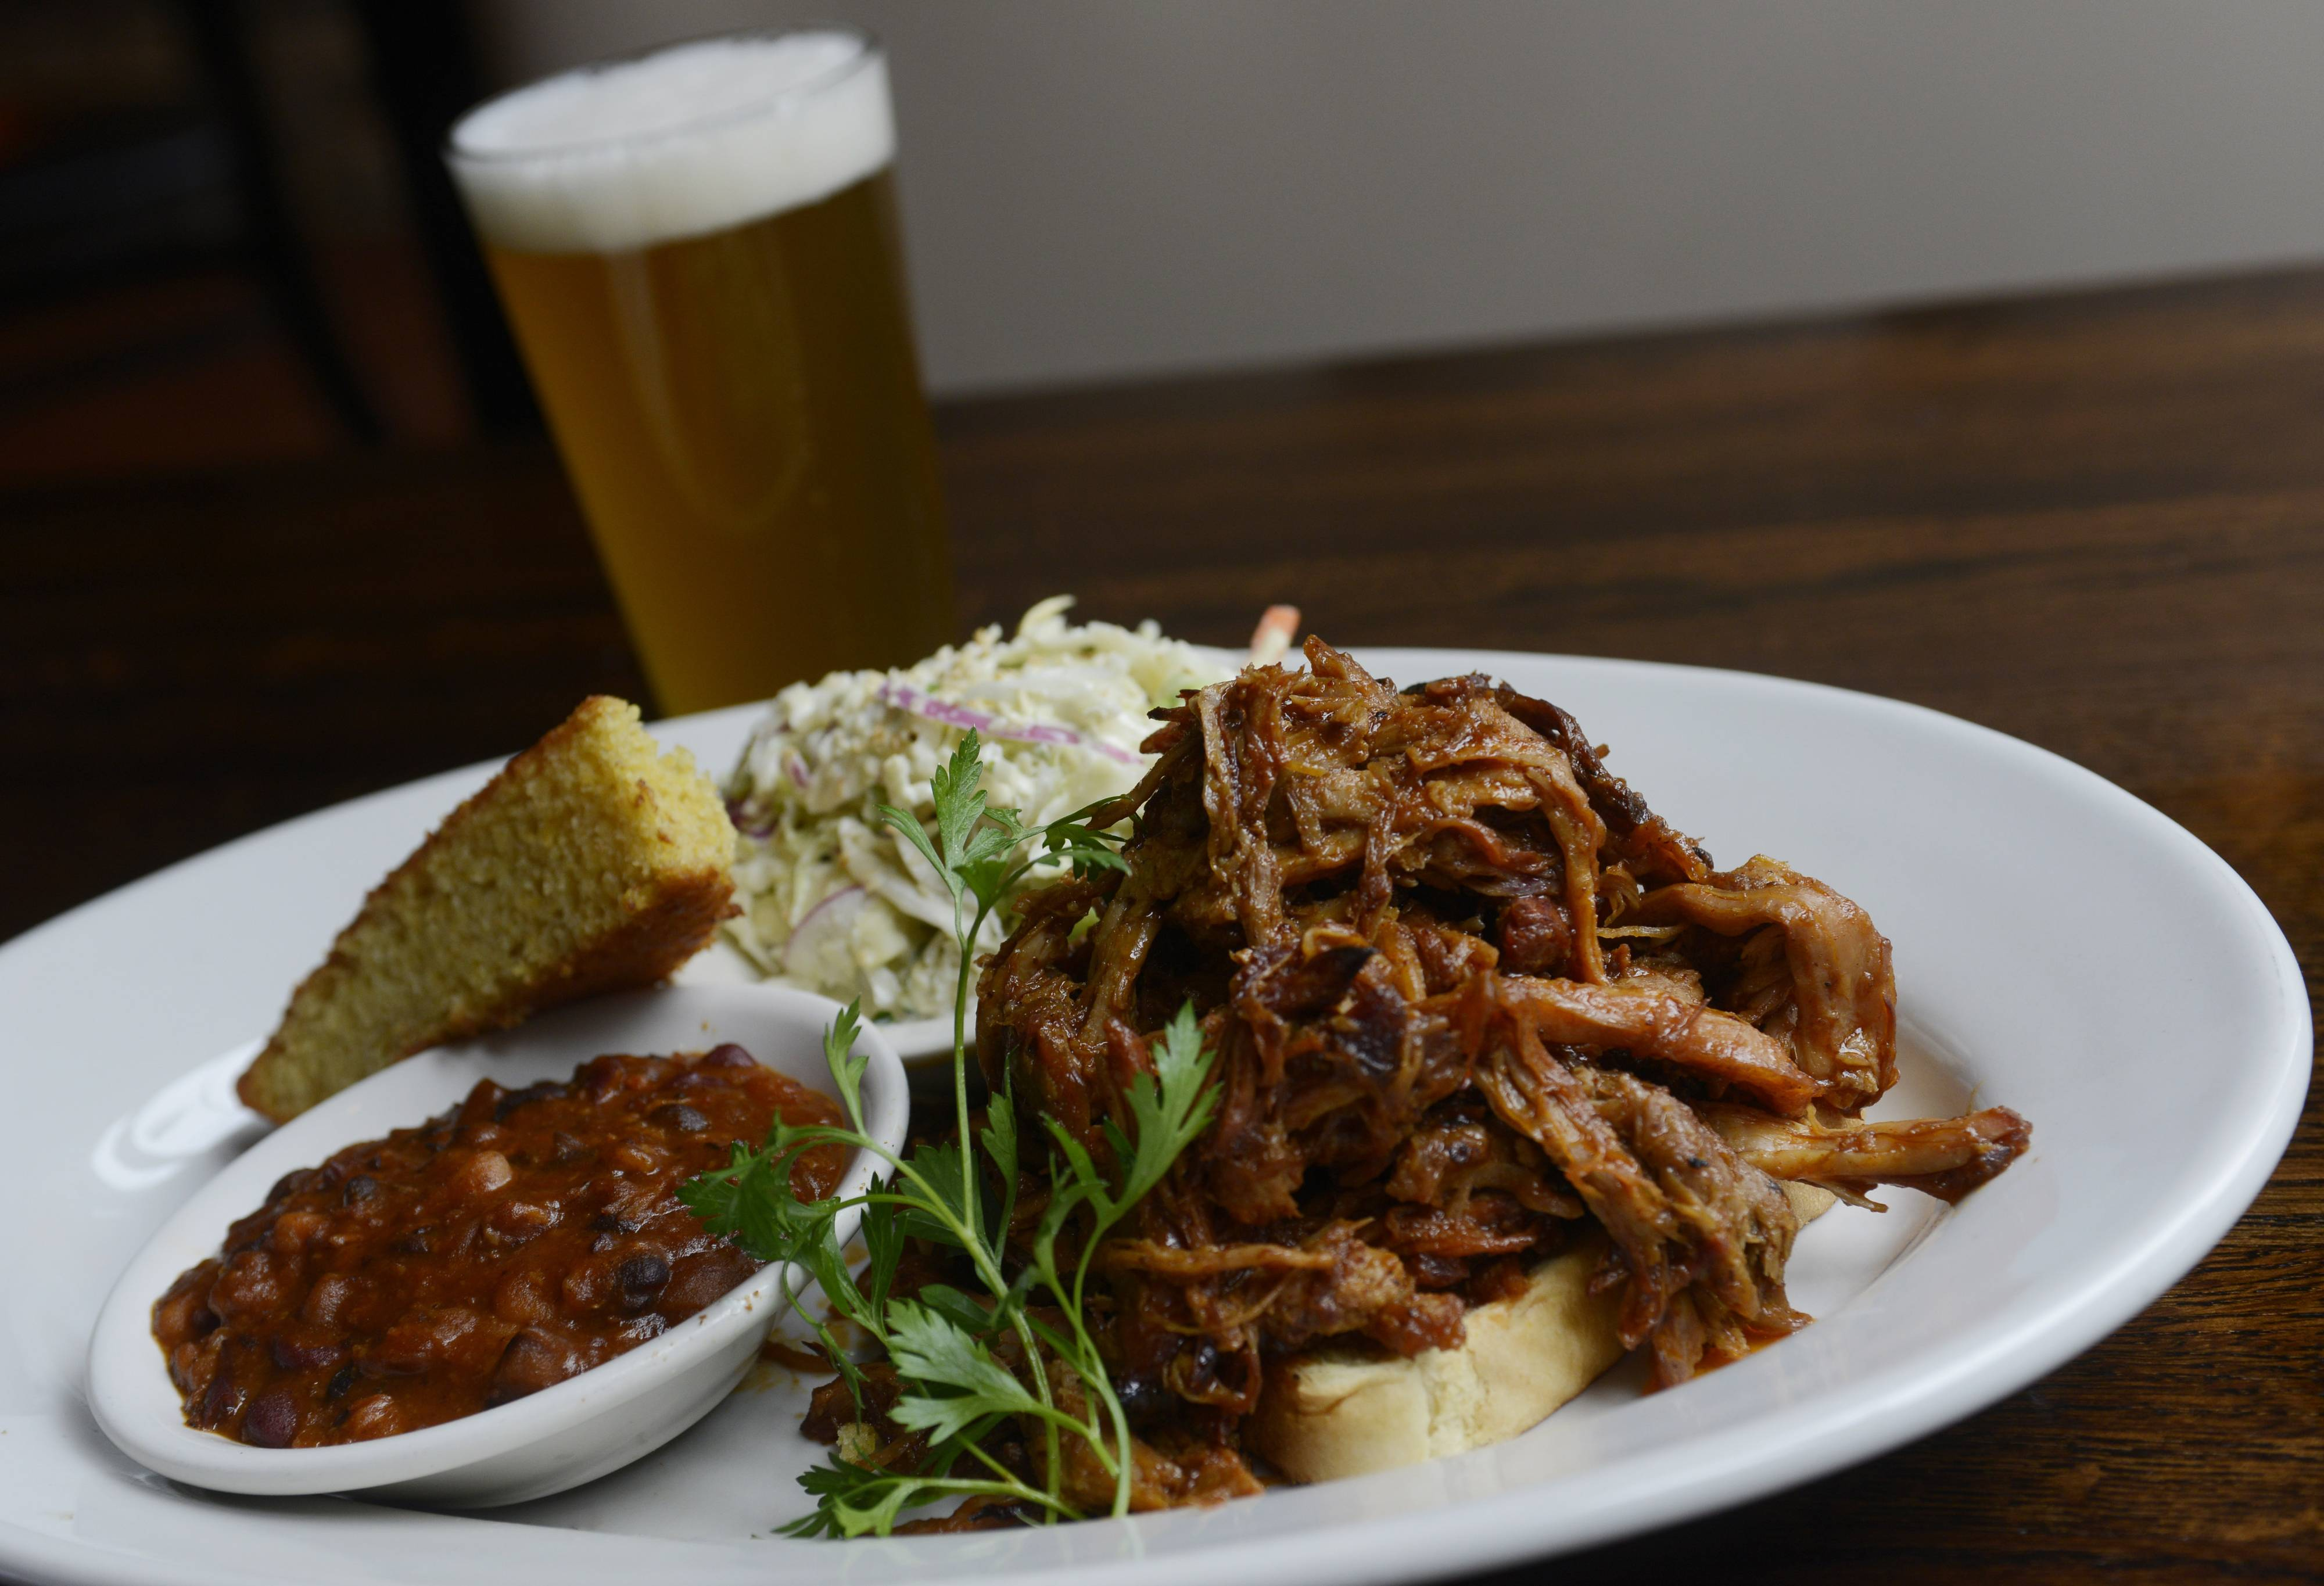 Carolina pork is available on the prix fixe lunch menu at Rack House Kitchen and Tavern in Arlington Heights.